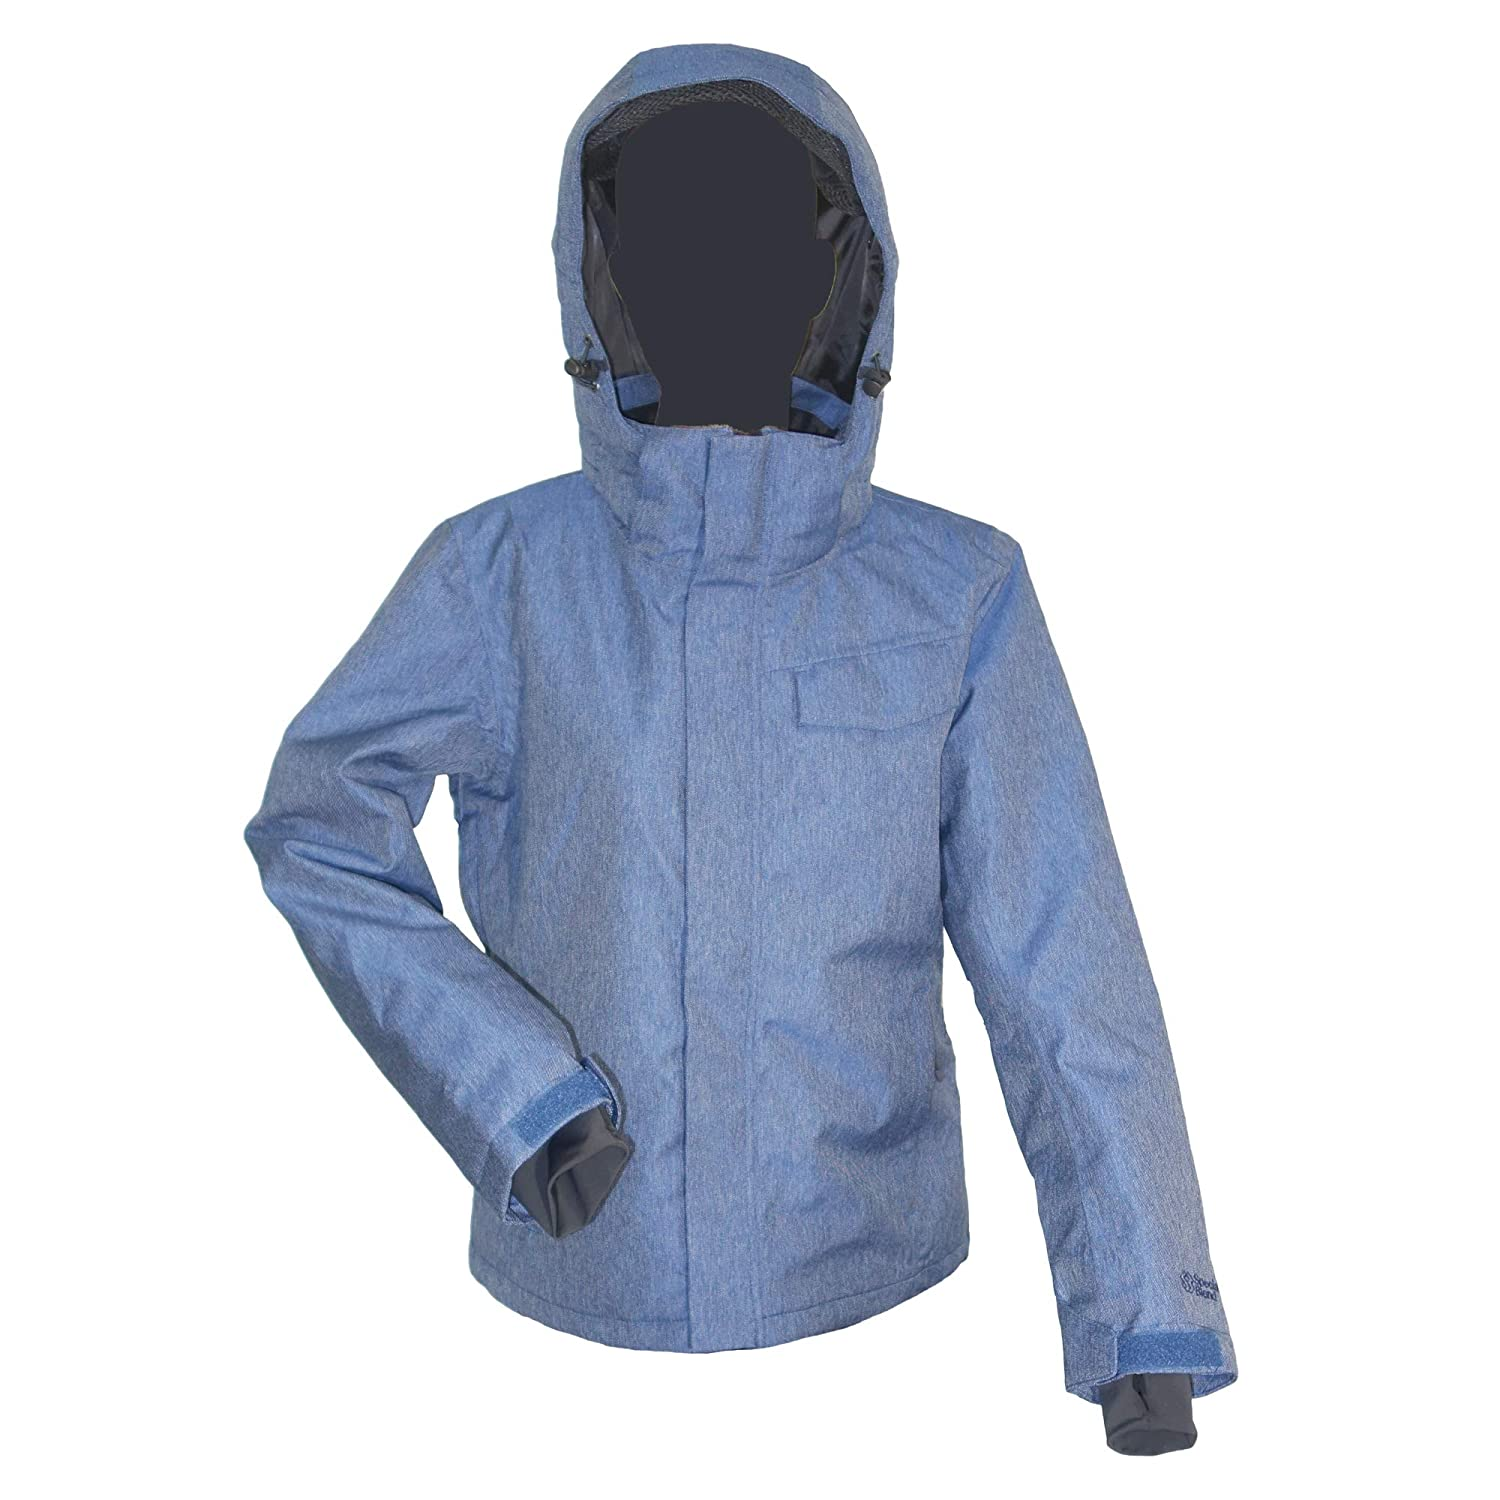 d4f84064 Amazon.com: Special Blend | Womens Snowboard Jacket/Ski Jacket: Clothing